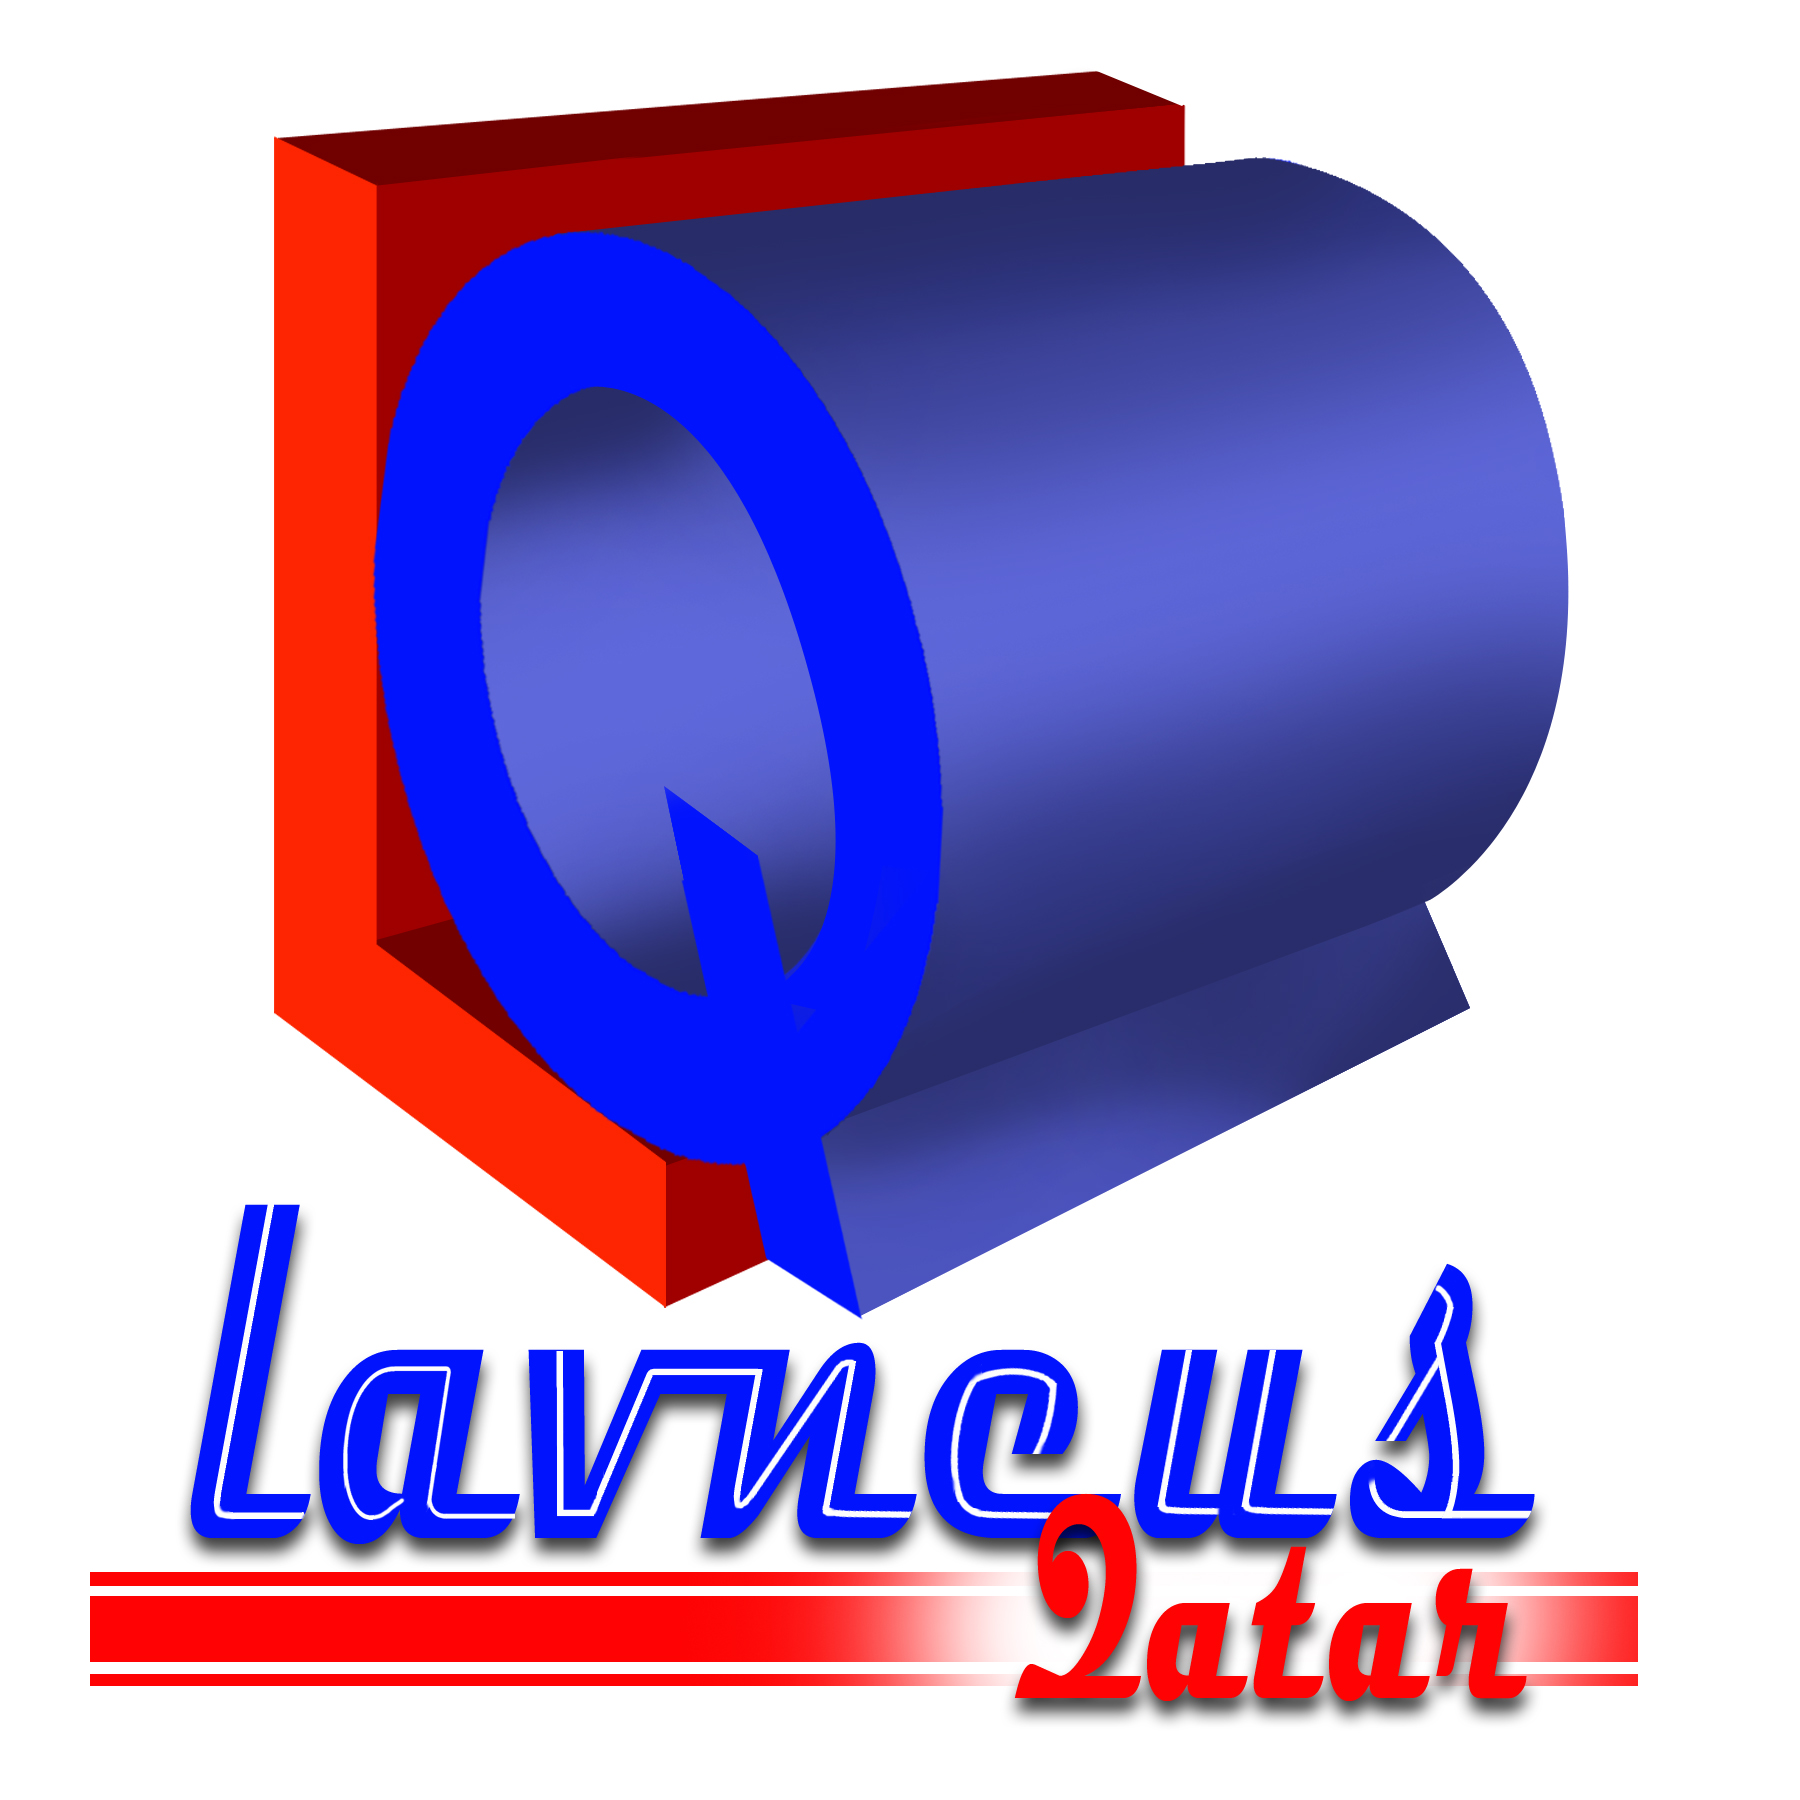 Logo Design by Kitz Malinao - Entry No. 90 in the Logo Design Contest Imaginative Logo Design for lavneus qatar.